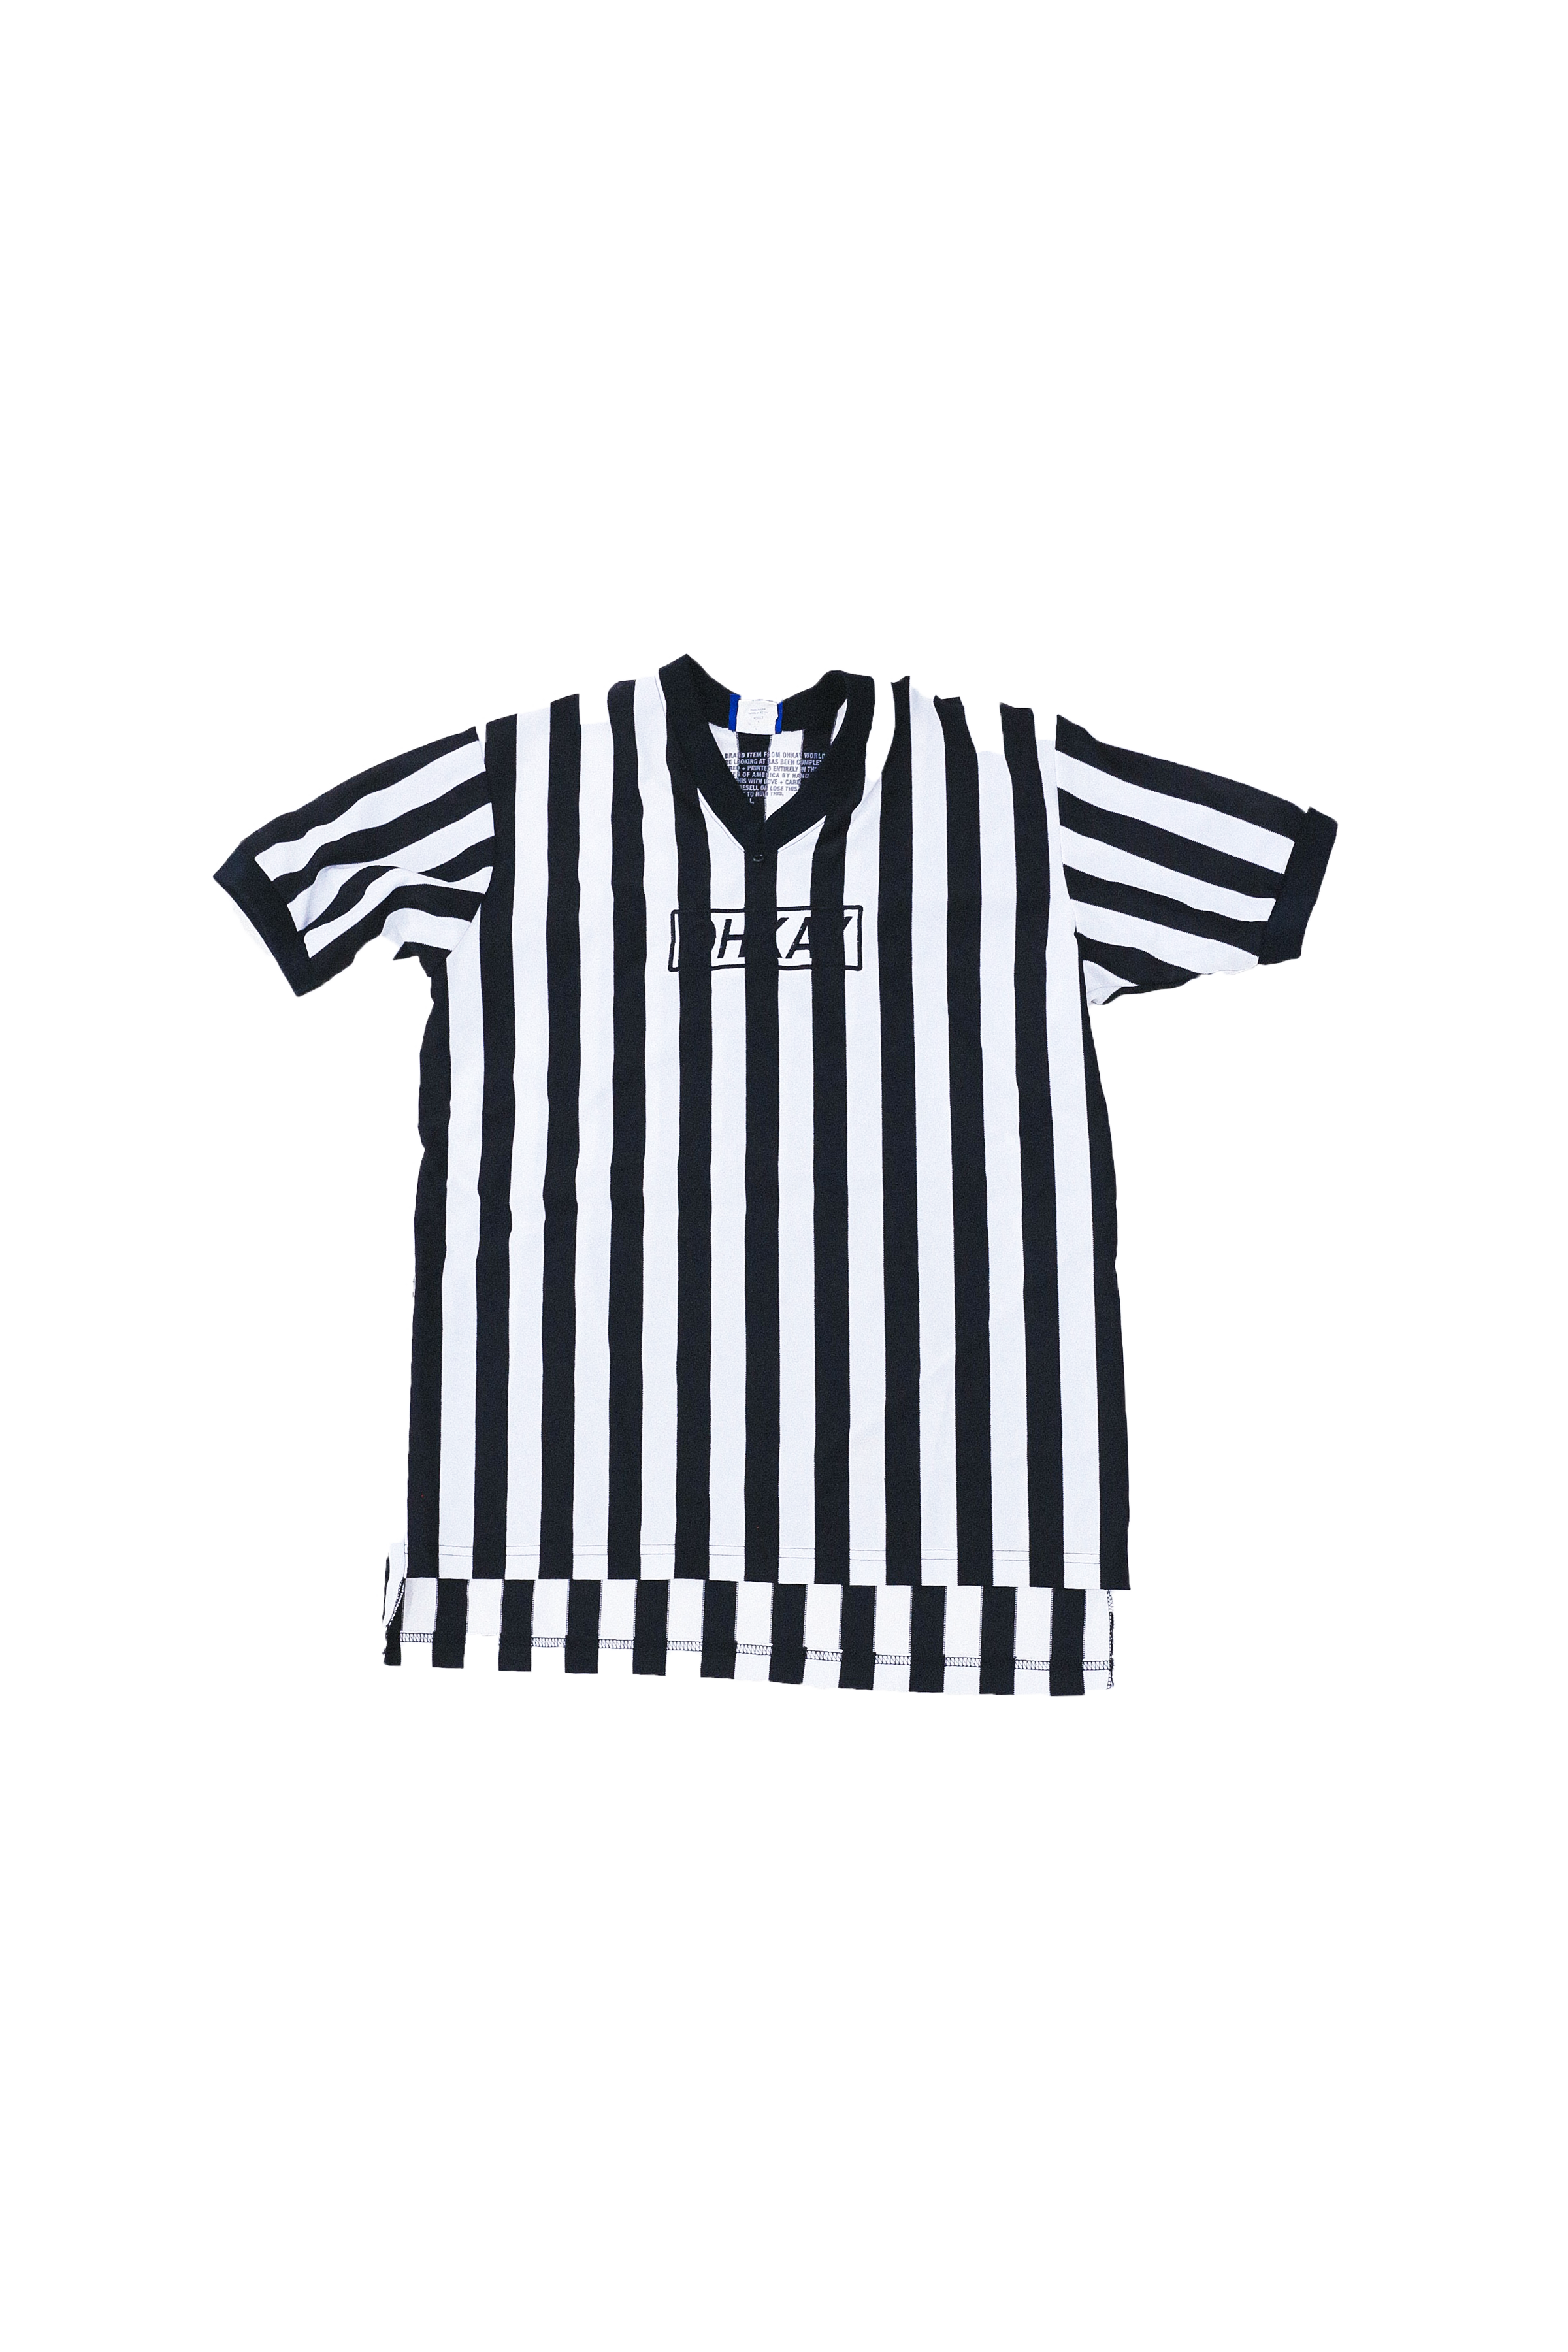 soccer striped front.png